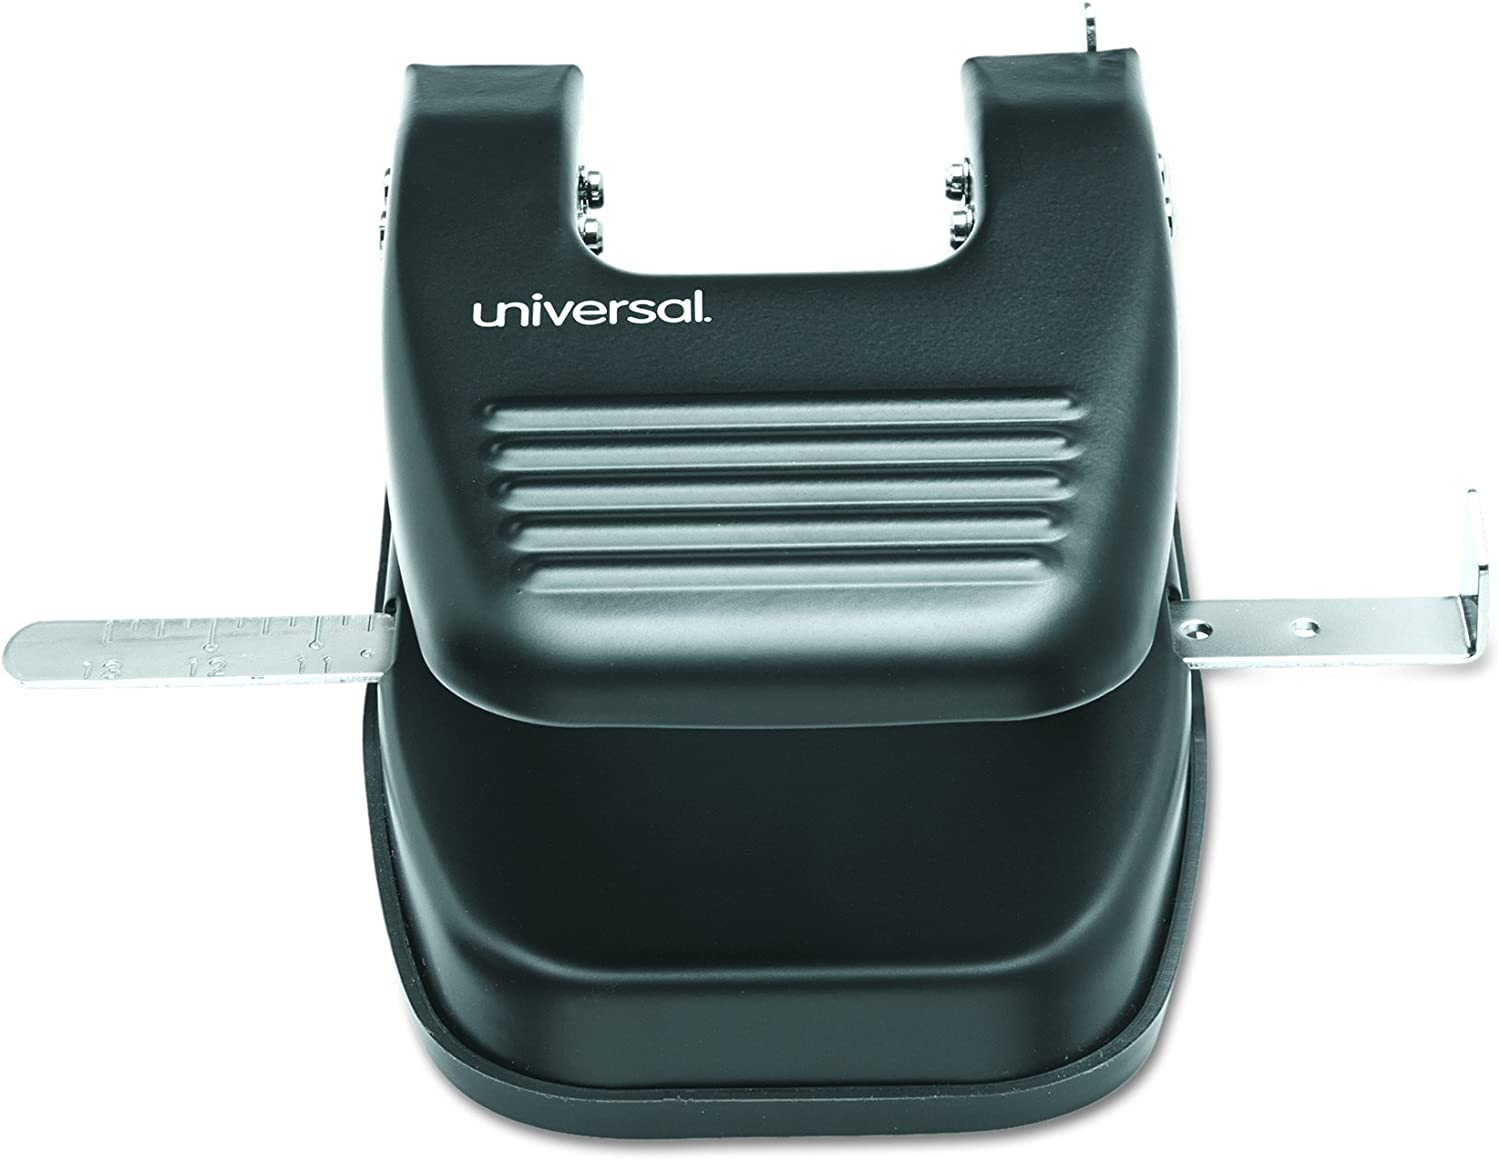 Universal 74222 30-Sheet Two-Hole Punch 9//32 Holes Black